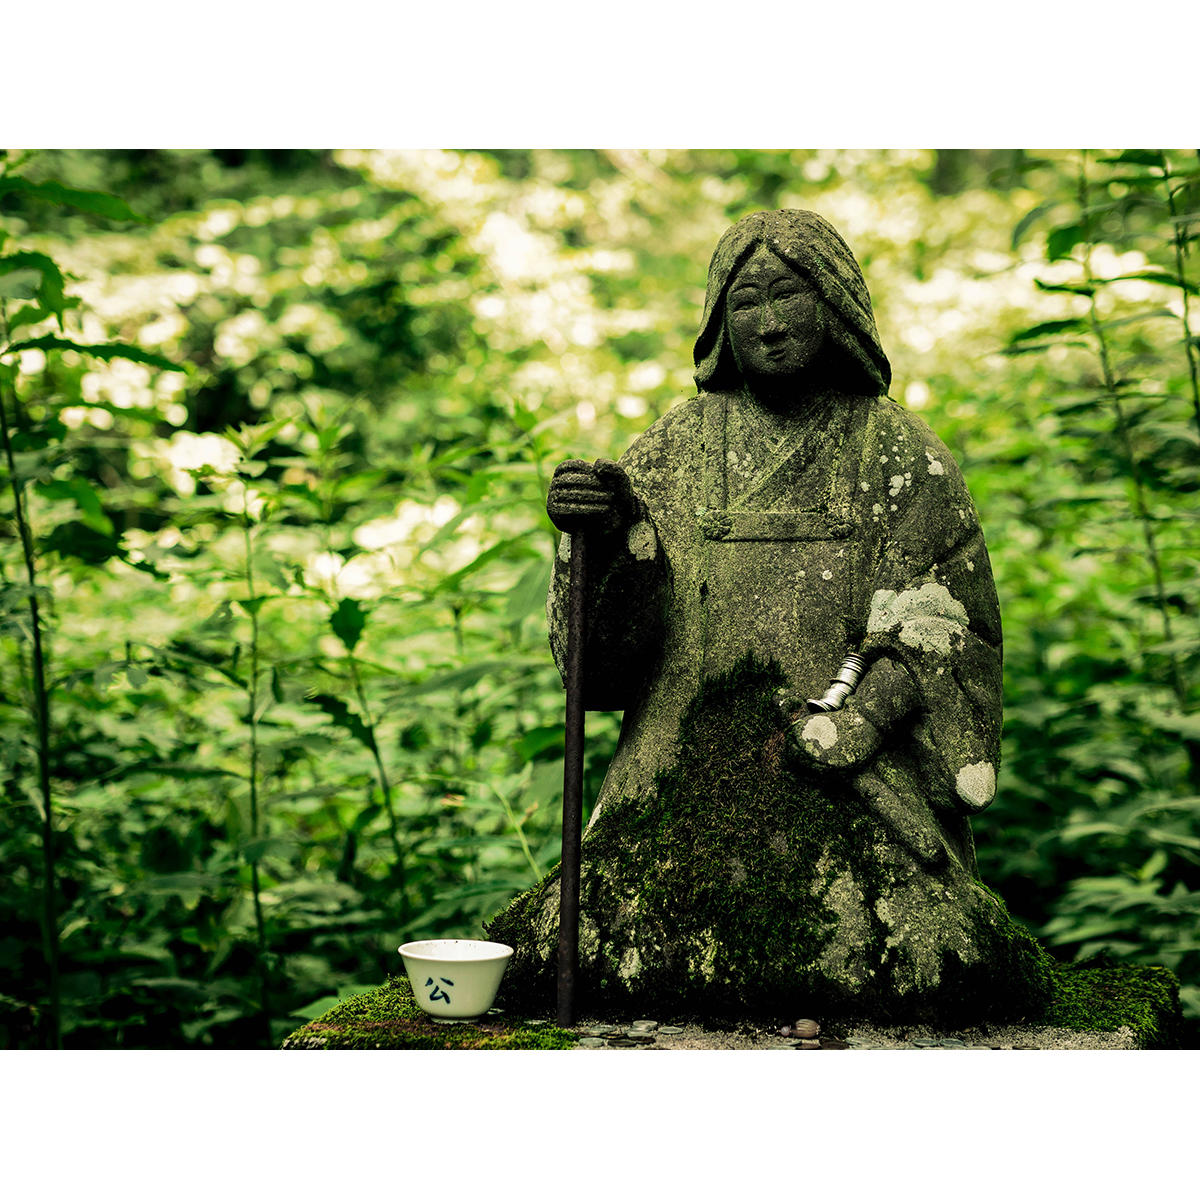 Mossy statue